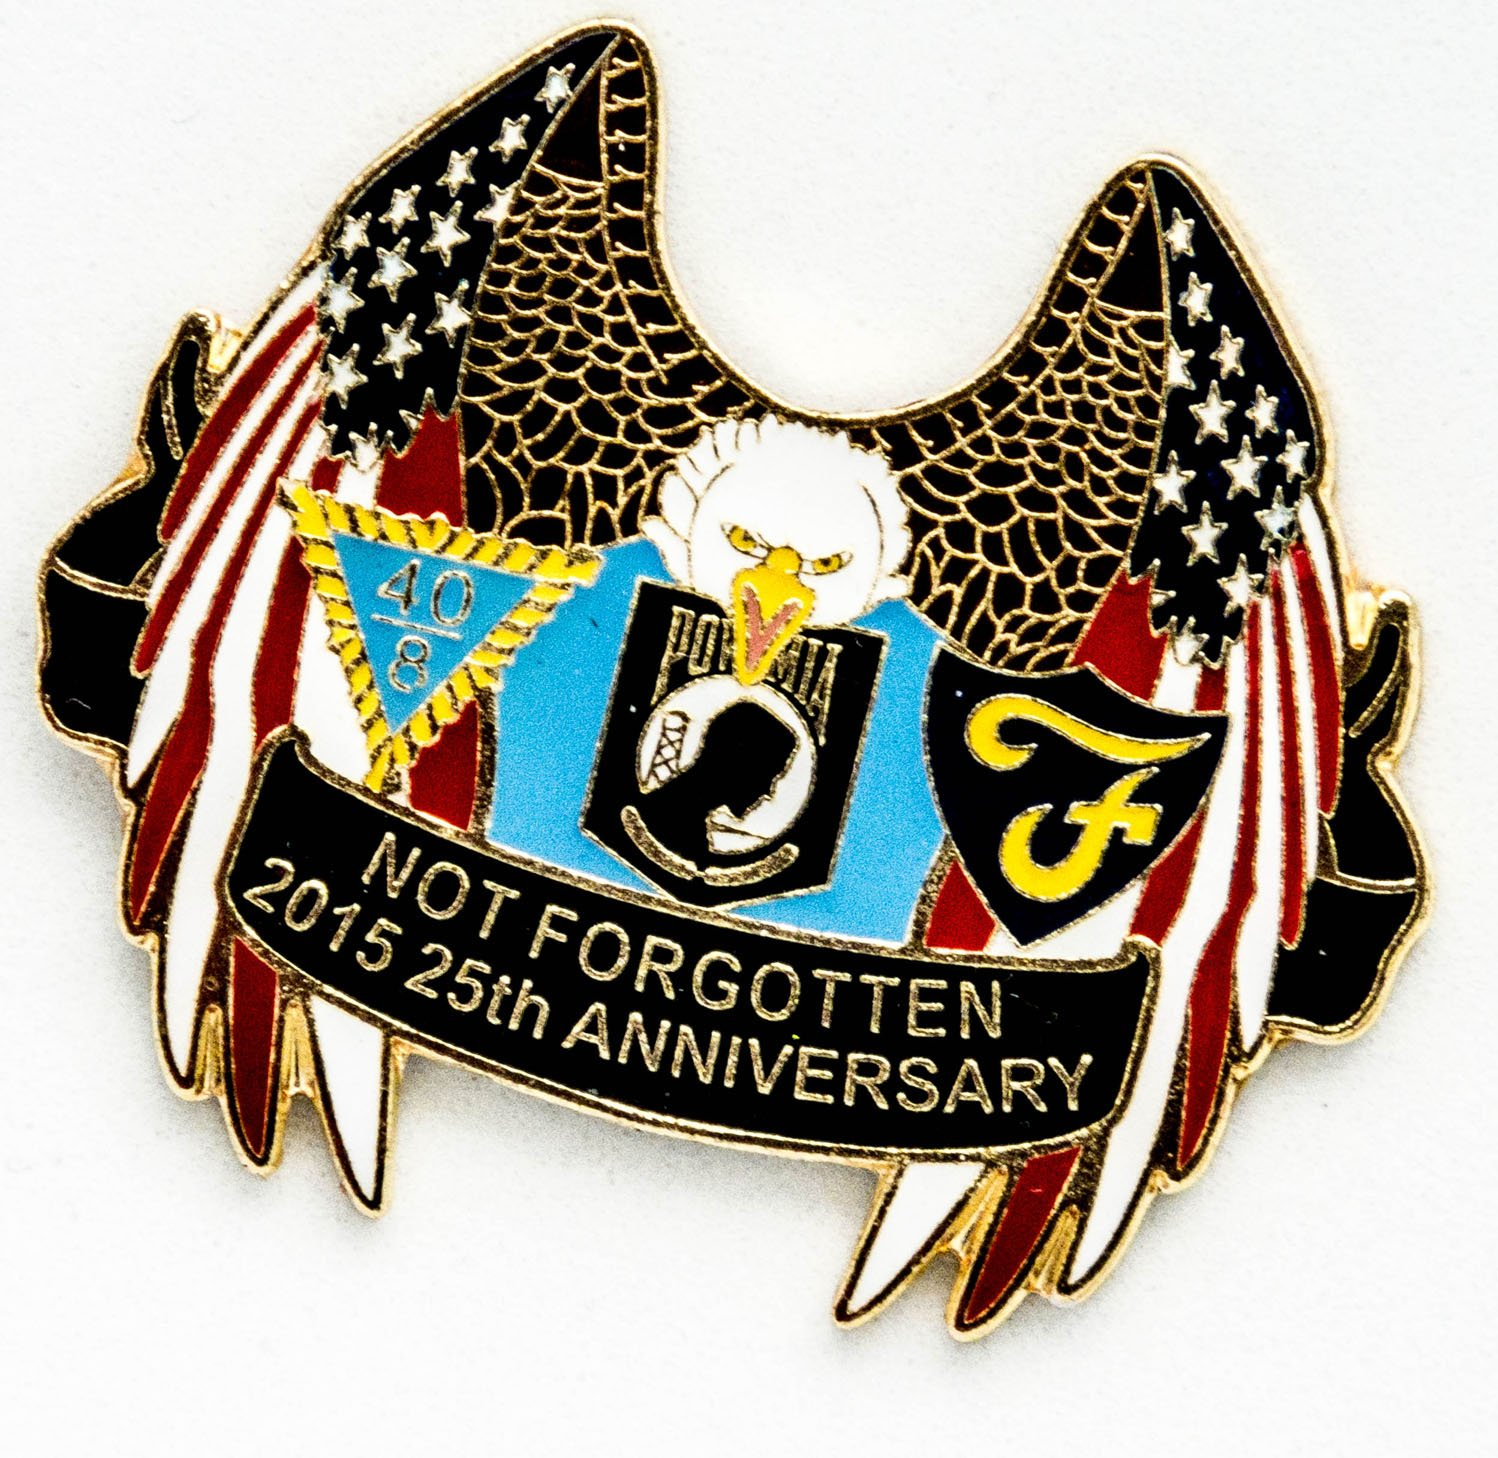 POW MIA Emblem Mint, Patriotic Gifts - USA POW MIA Lapel Pin or Hat Pin 25th Anniversary - Stocking Stuffers Christmas Gifts - Jewelry-Like Finish - Military Veterans, Army, Navy, Air Force, Marines